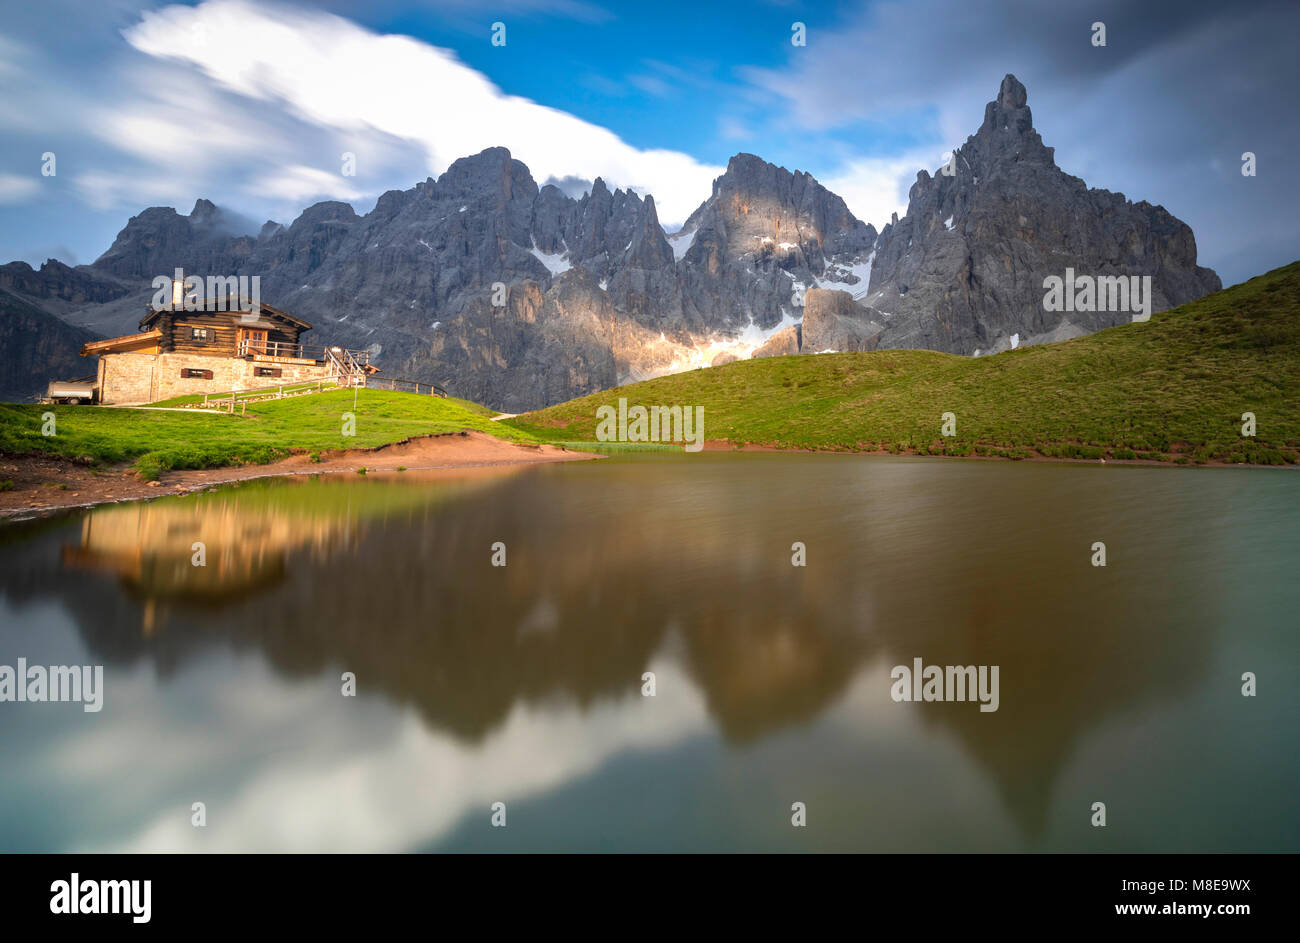 Baita Segabtini, Passo Rolle, San Martino di Castrozza Village, Trento district, Trentino Alto Adige, Italy Stock Photo